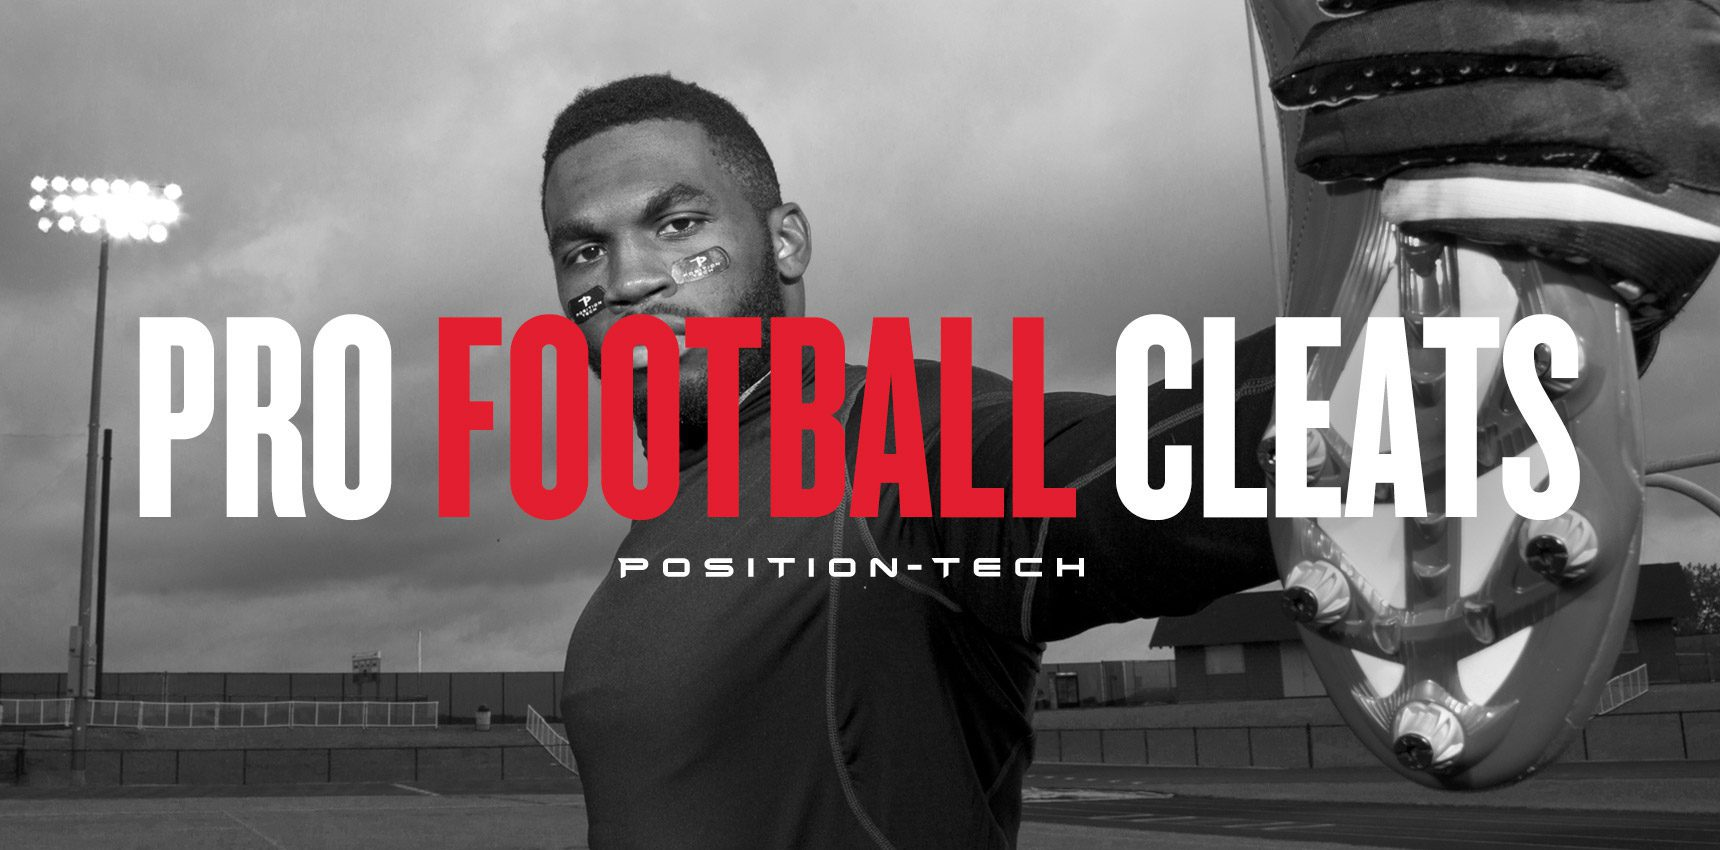 Position-Tech promotional banner of professional athlete displaying football cleat